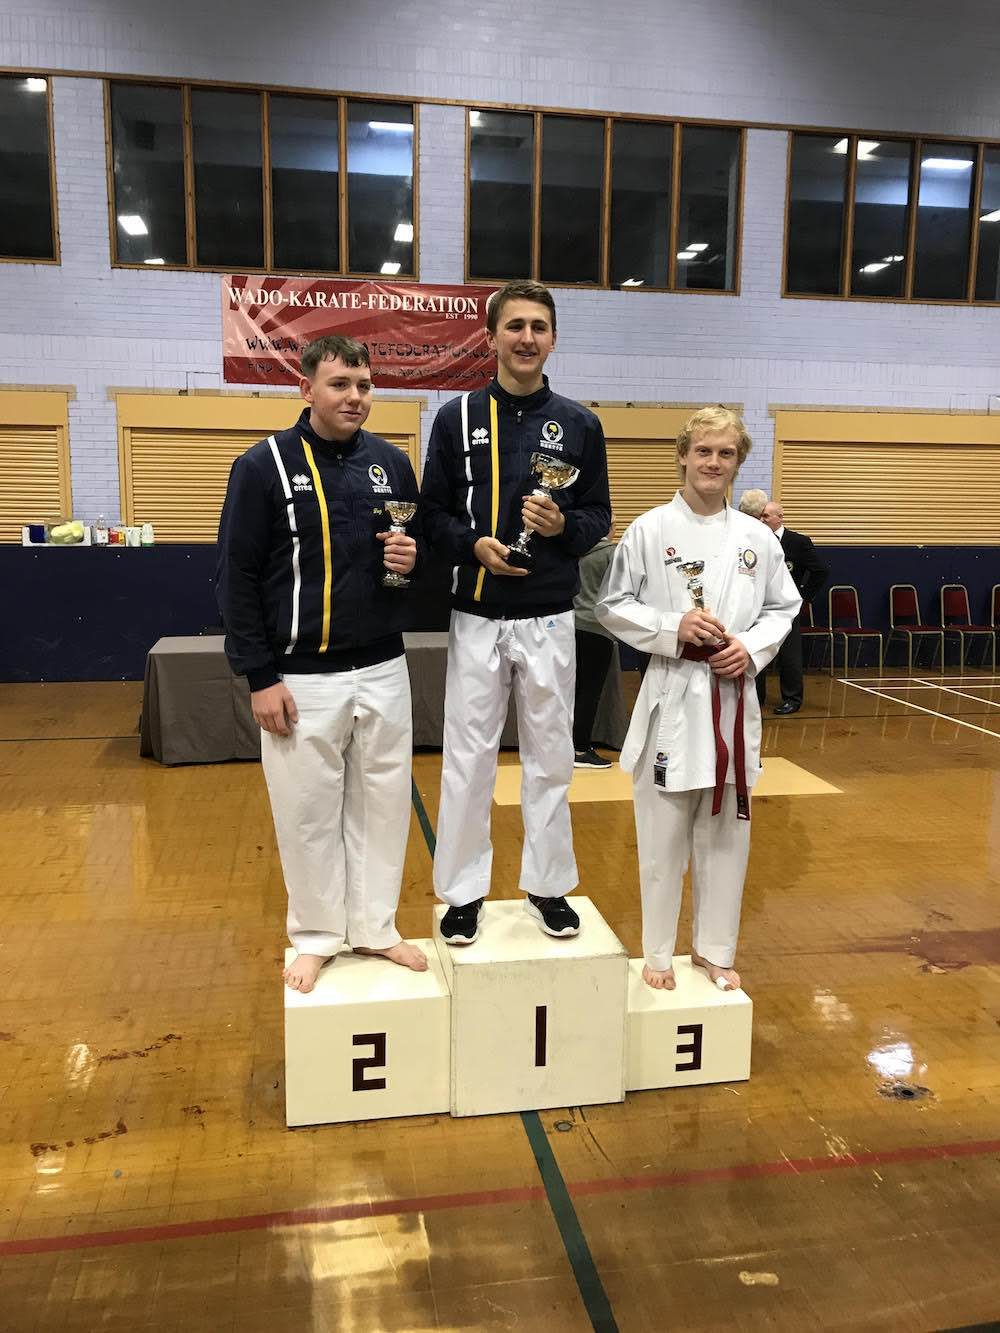 Wado Karate Federation Sunday 19th November 2017 Andrew Collins Under 18 Bronze Andrew Yorath Senior Male Openweight Bronze Andrew Collins Kubotan Karate Swansea